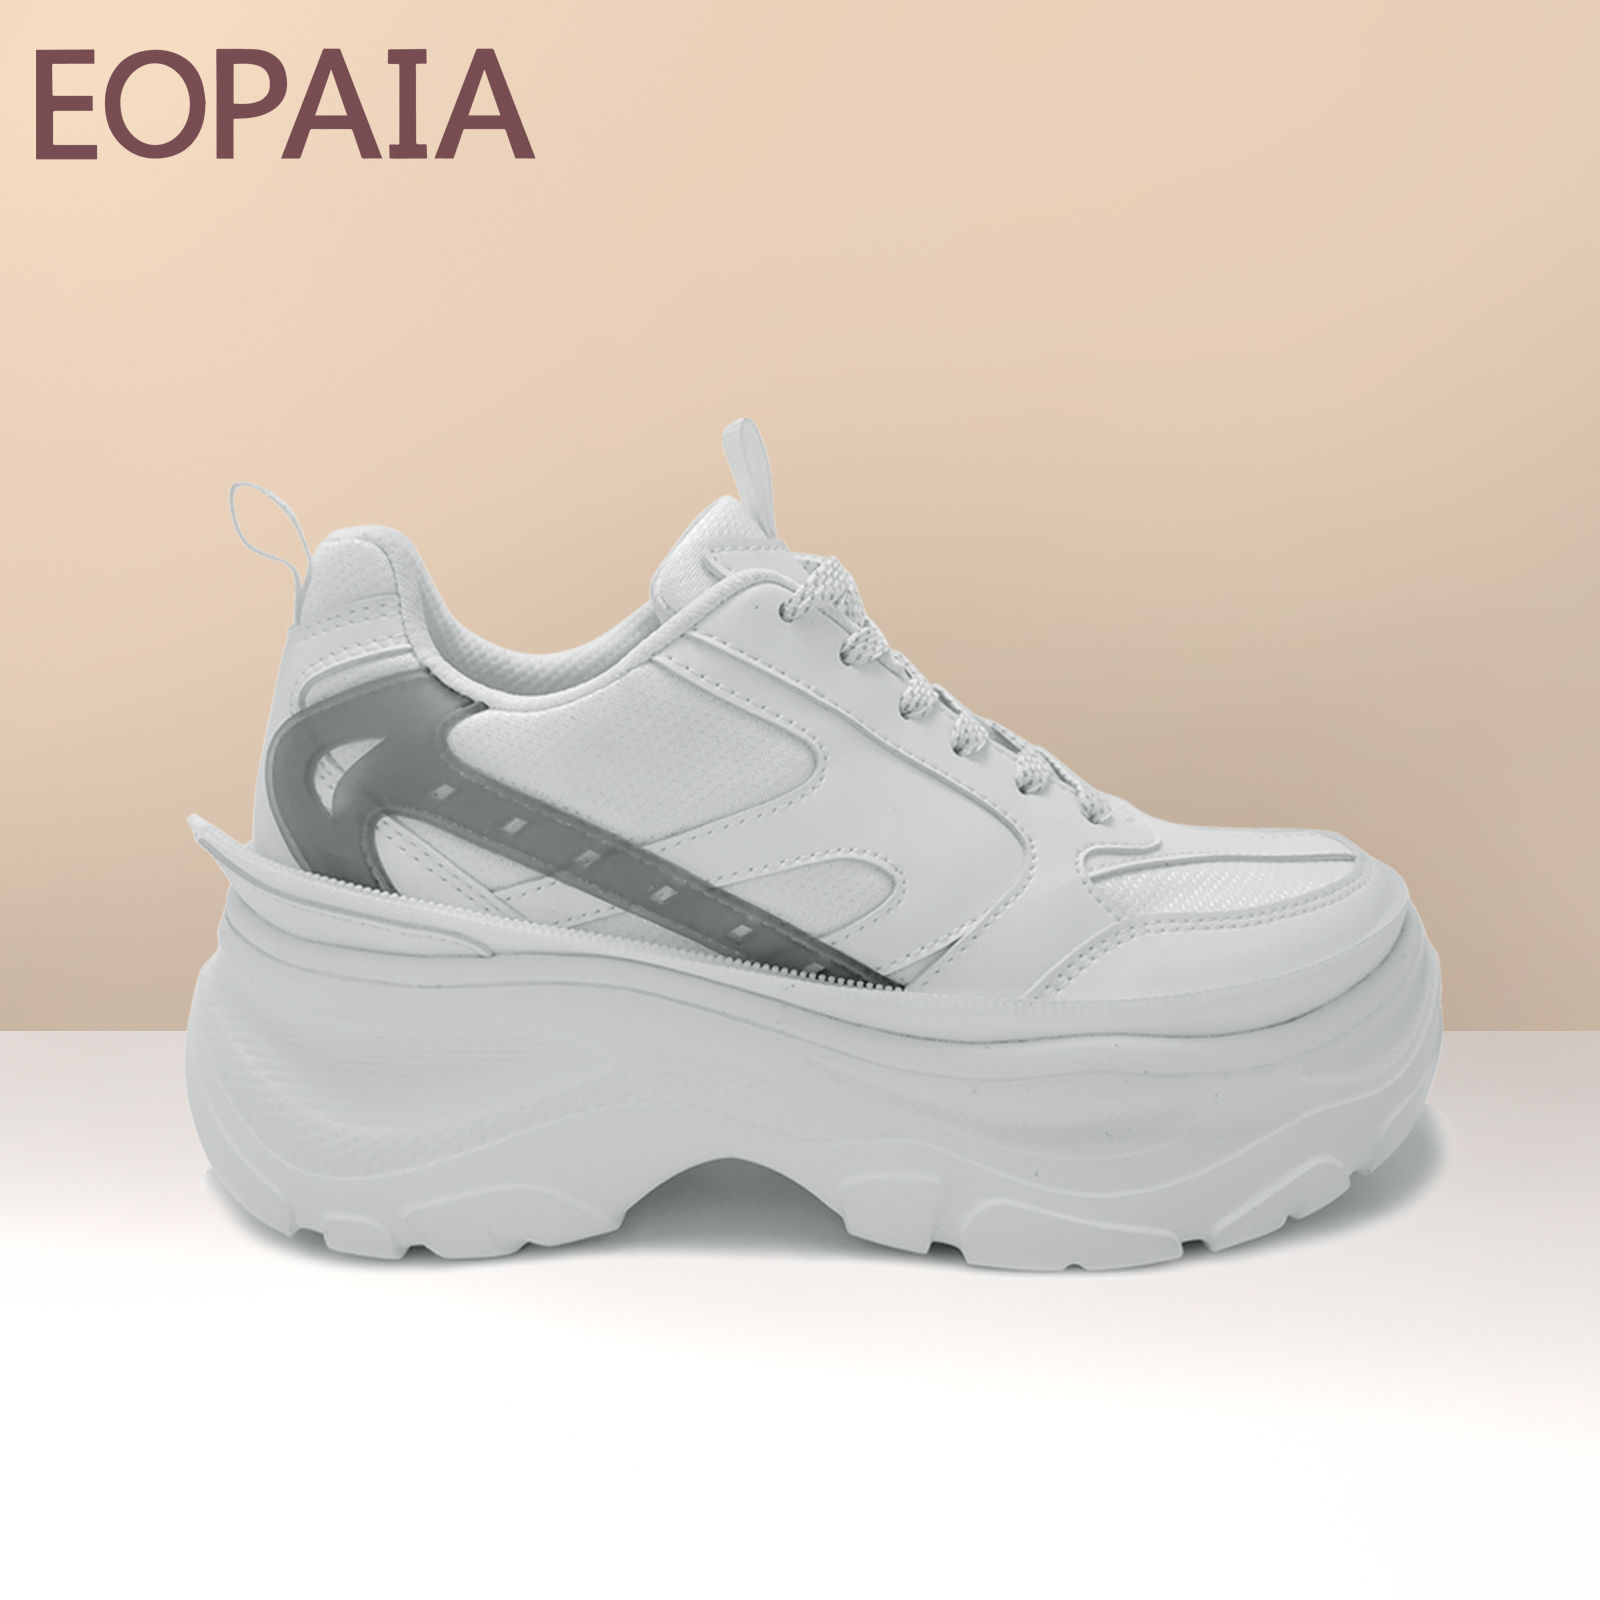 Waterproof diverse girl protective shoes